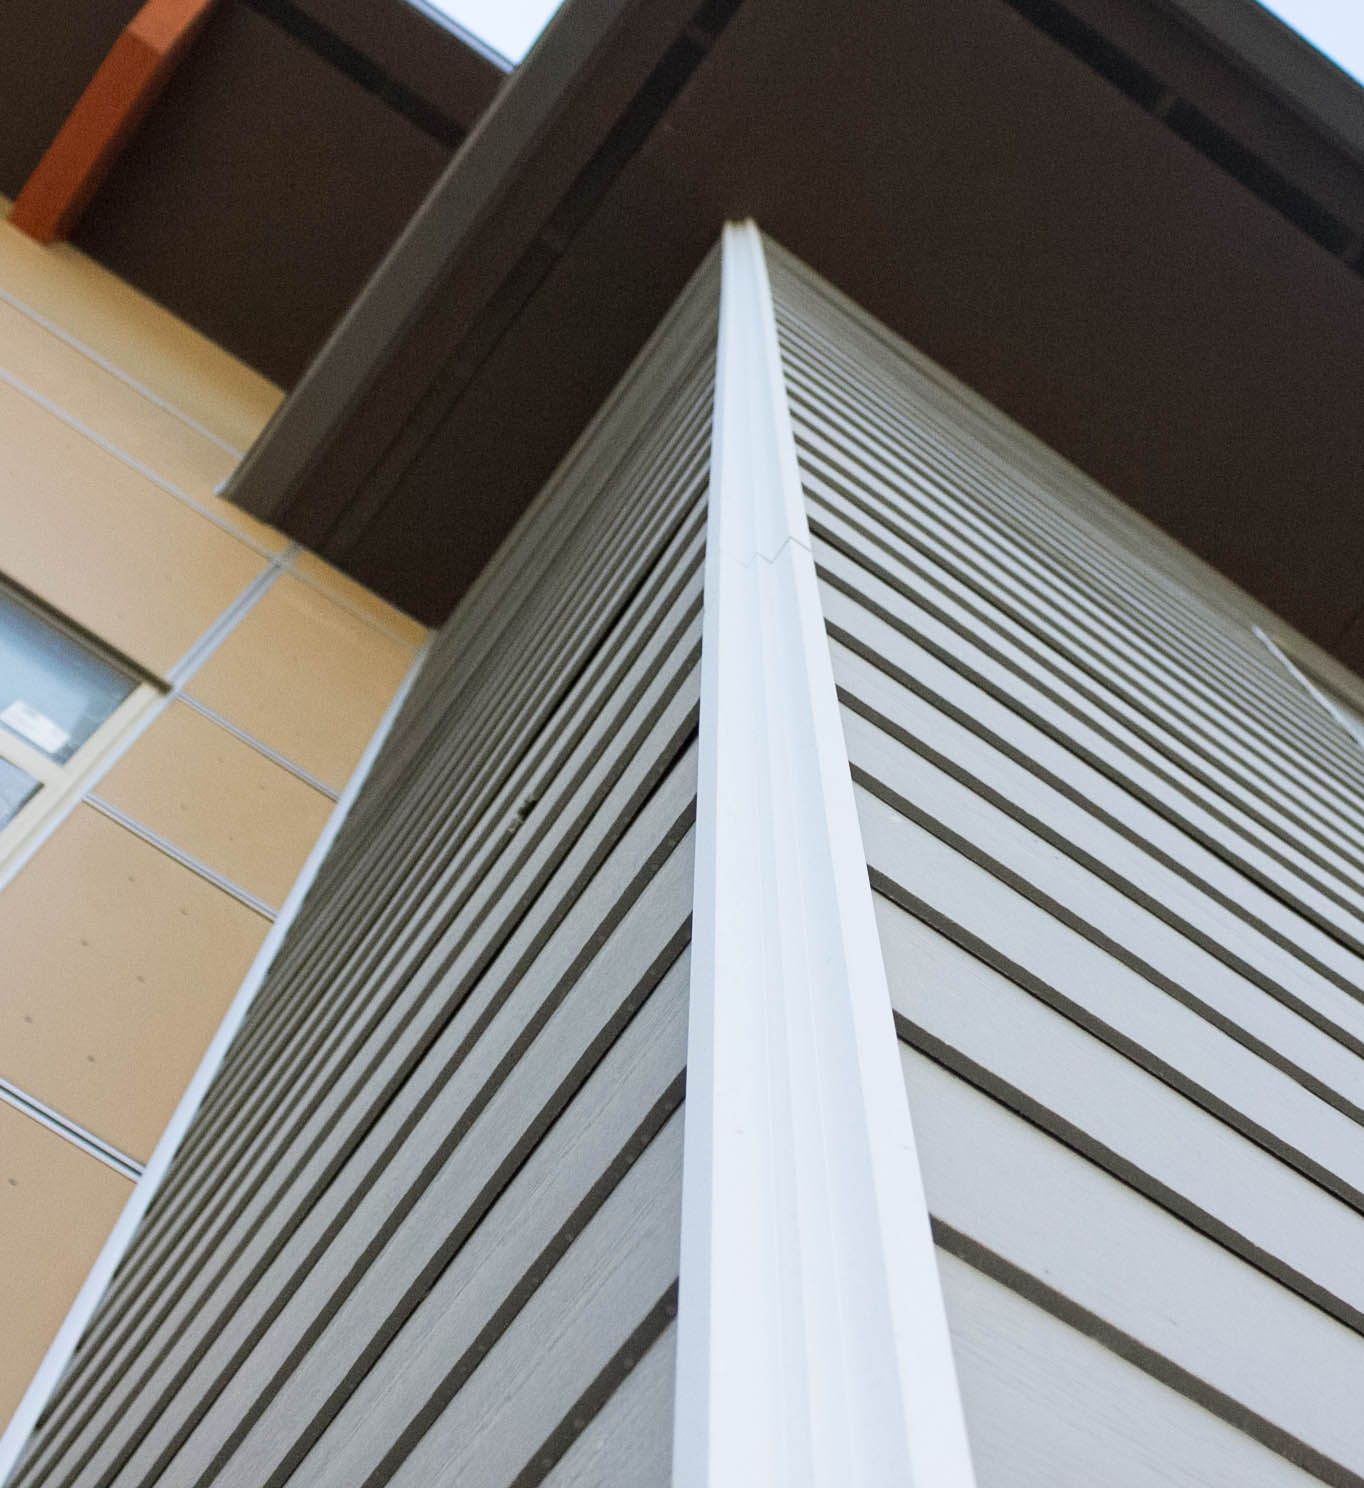 Built by allura fiber cement siding architecture for Architectural siding